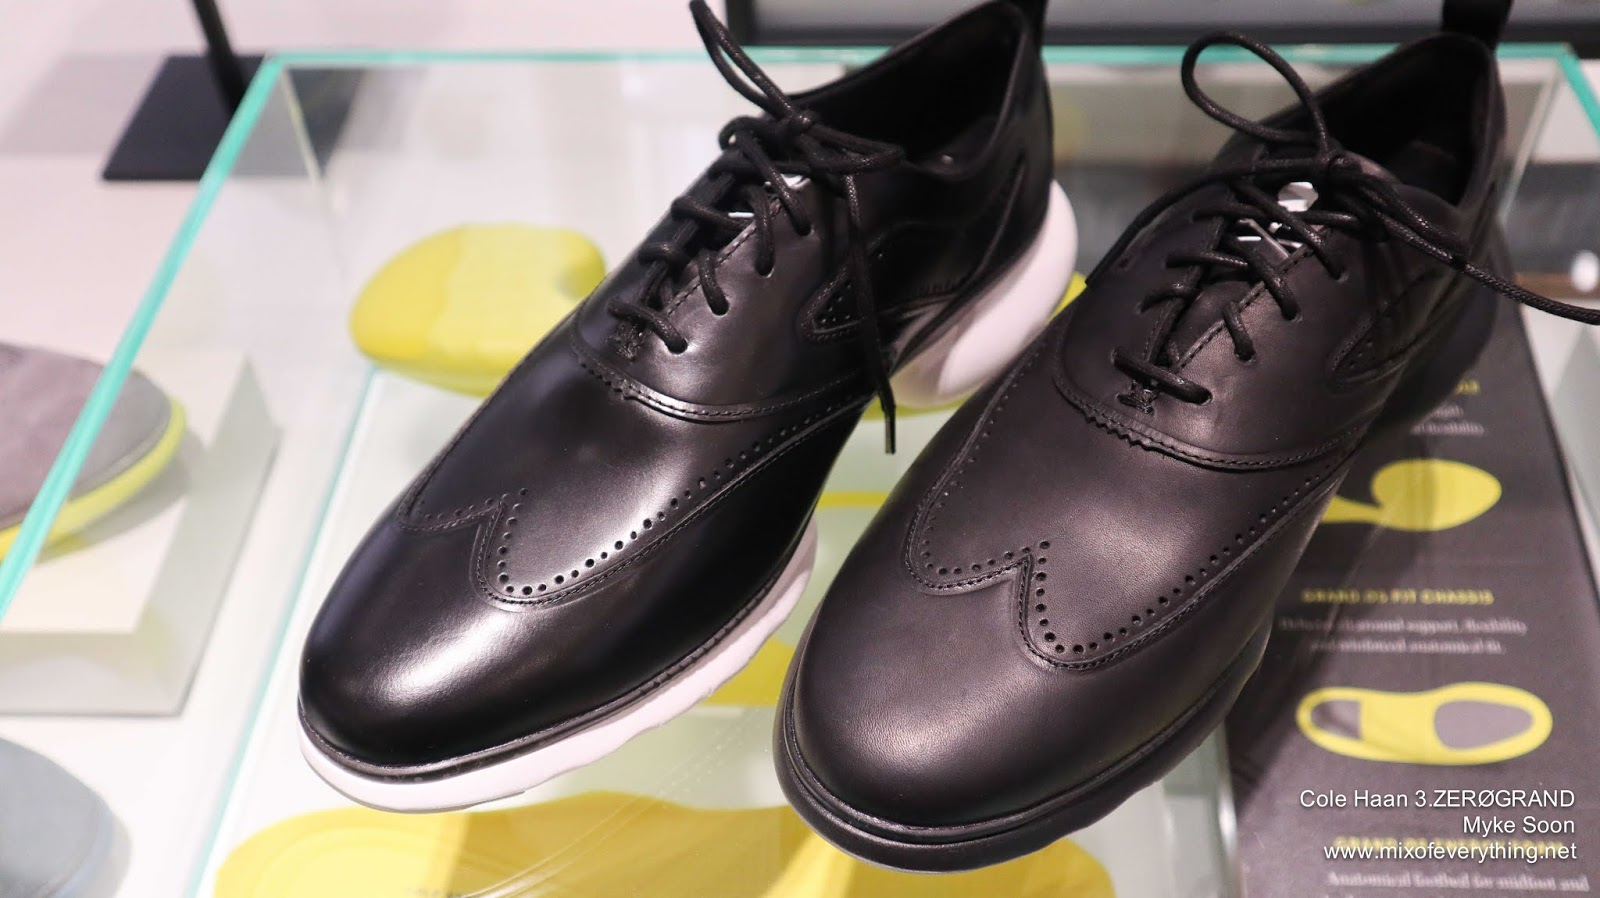 940879e853f Cole Haan Disrupting the footwear game with 3.ZERØGRAND - Hello ...